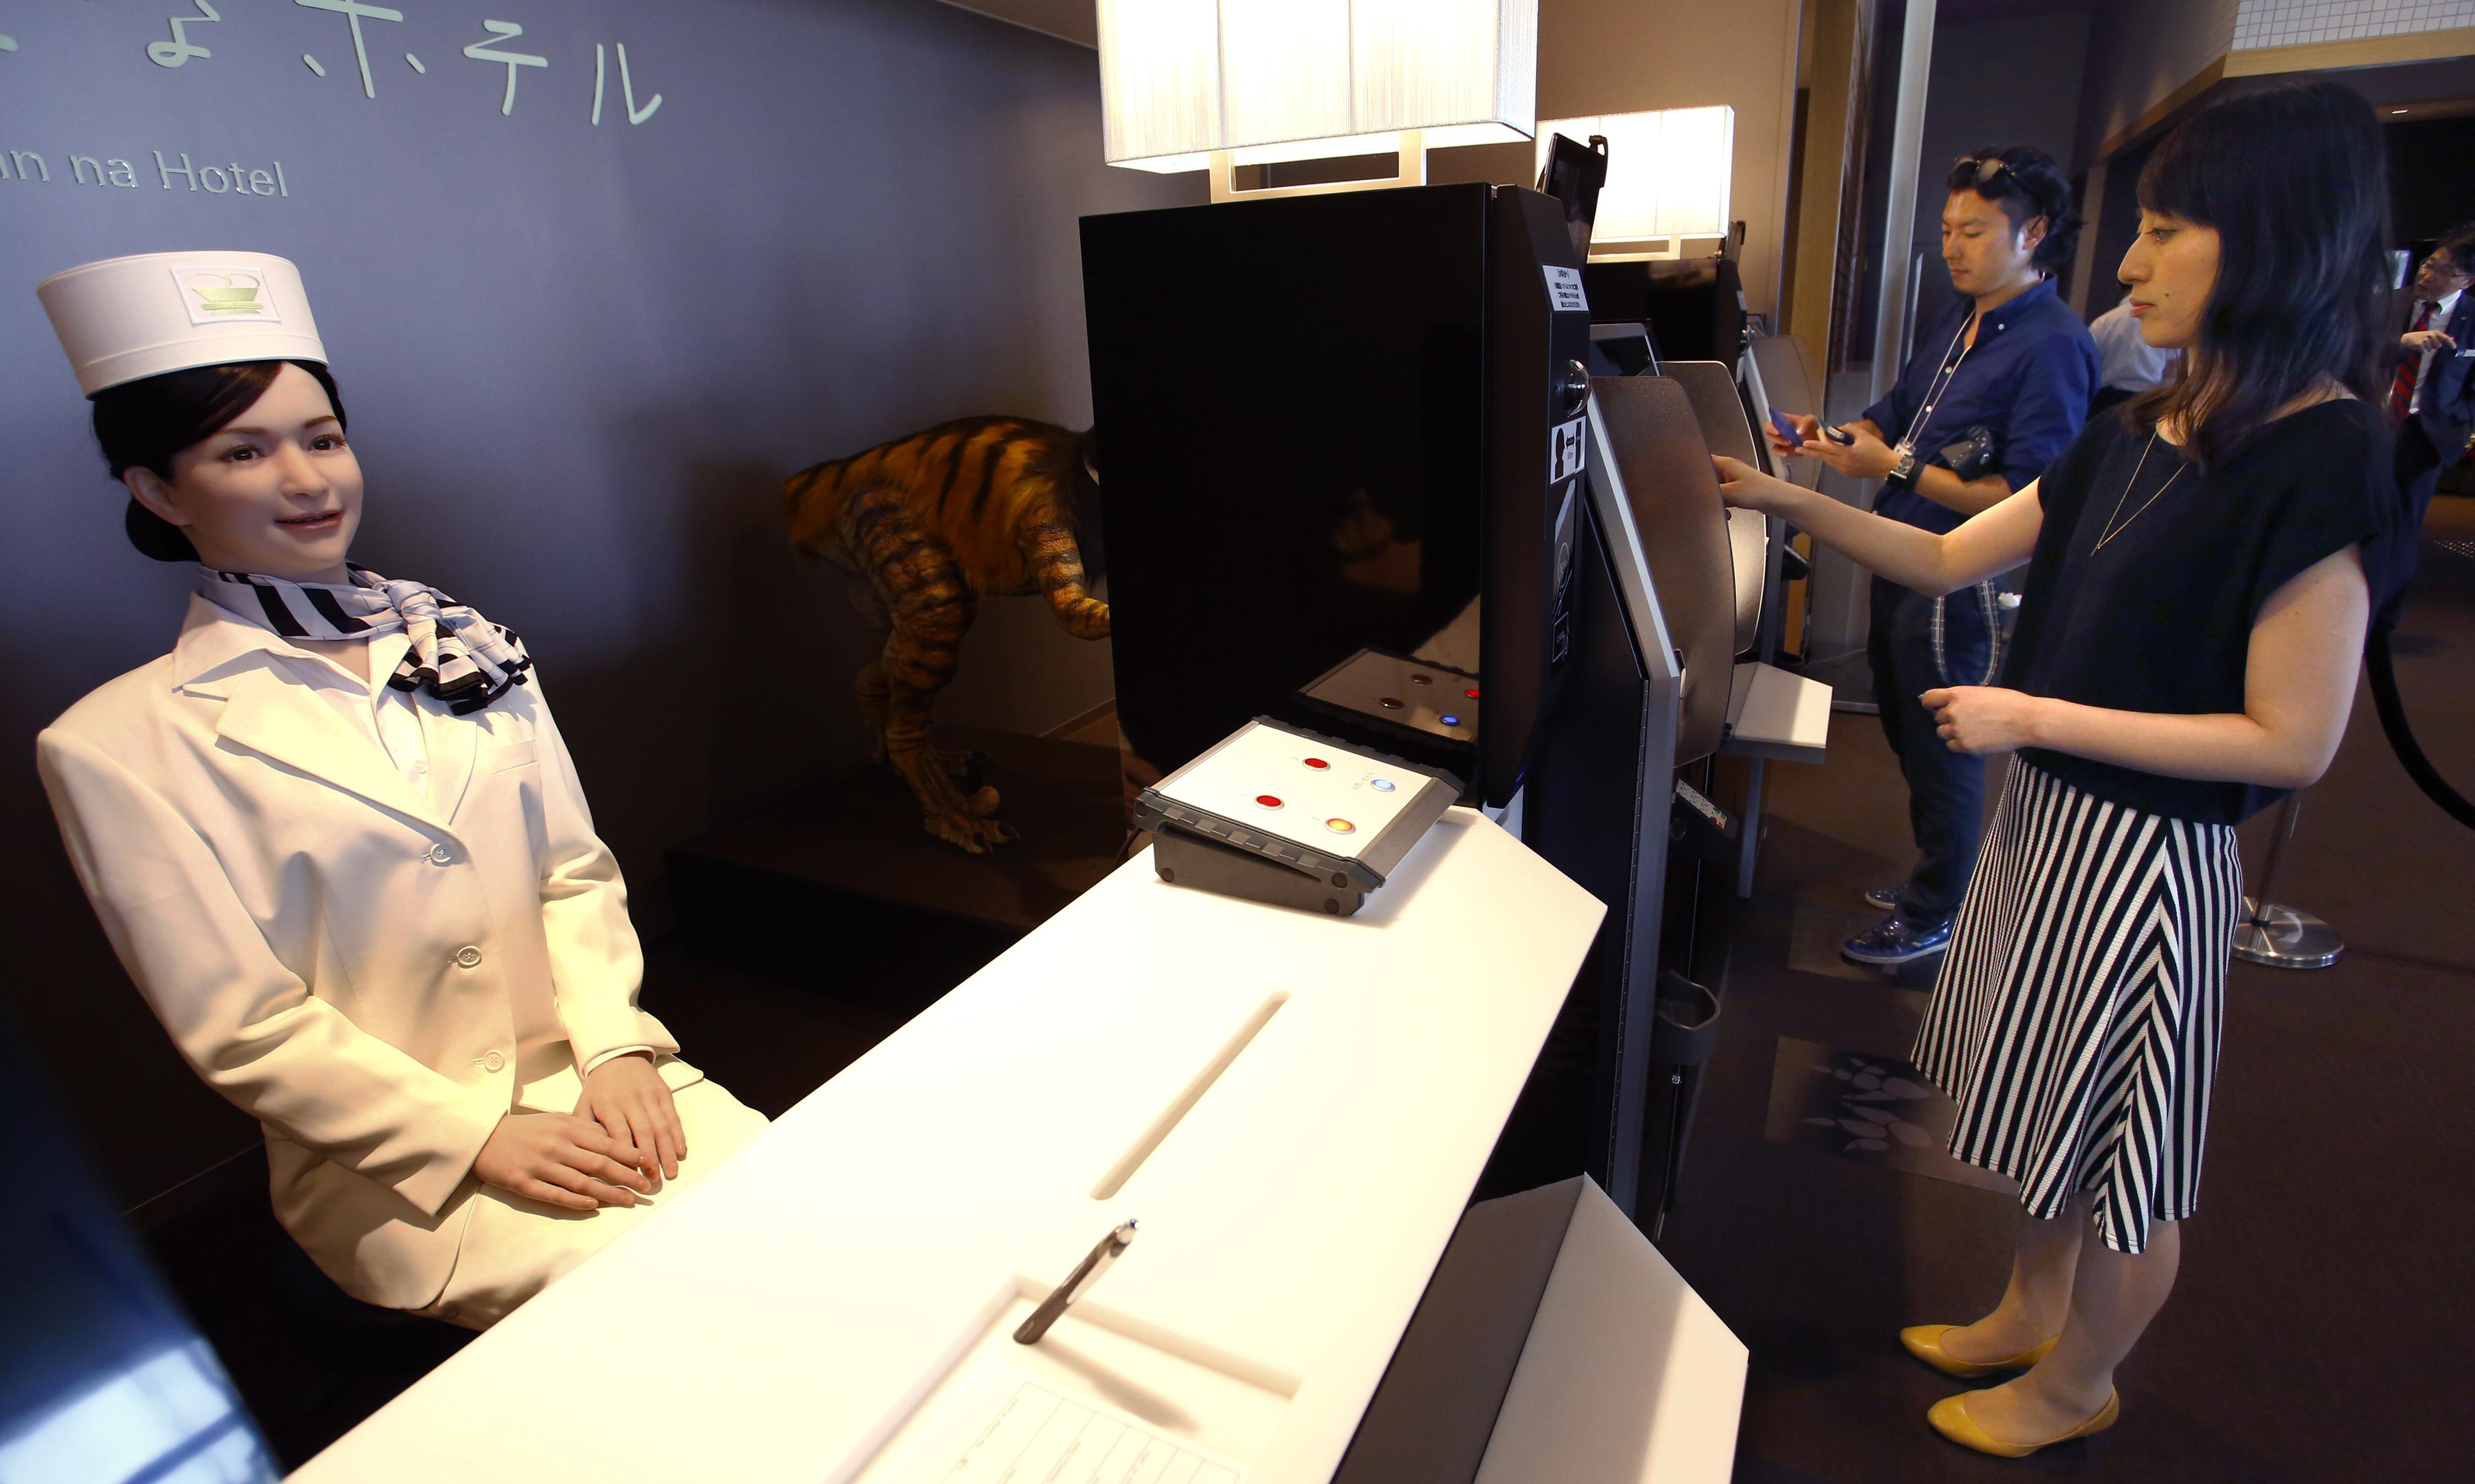 Japan's robot hotel: a dinosaur at reception, a machine for room service